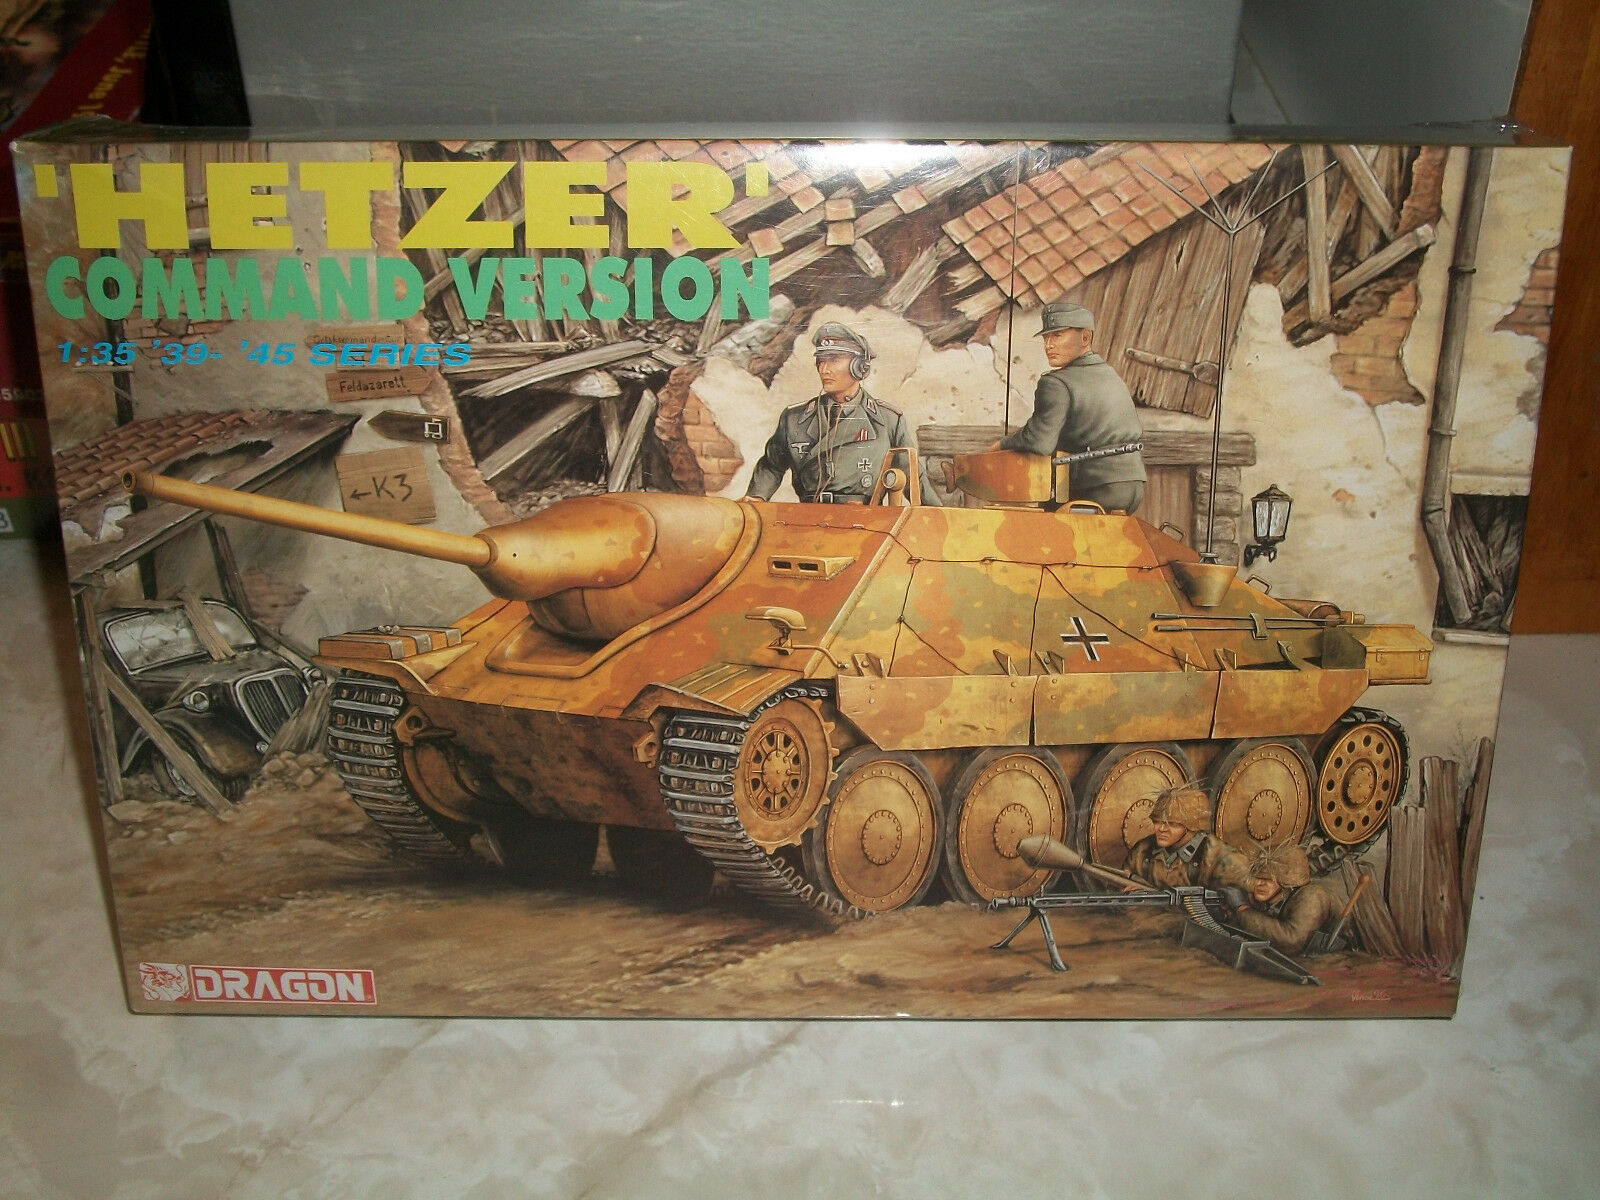 Dragon 1 35 Scale German 'Hetzer' Command Version Tank - Factory Sealed